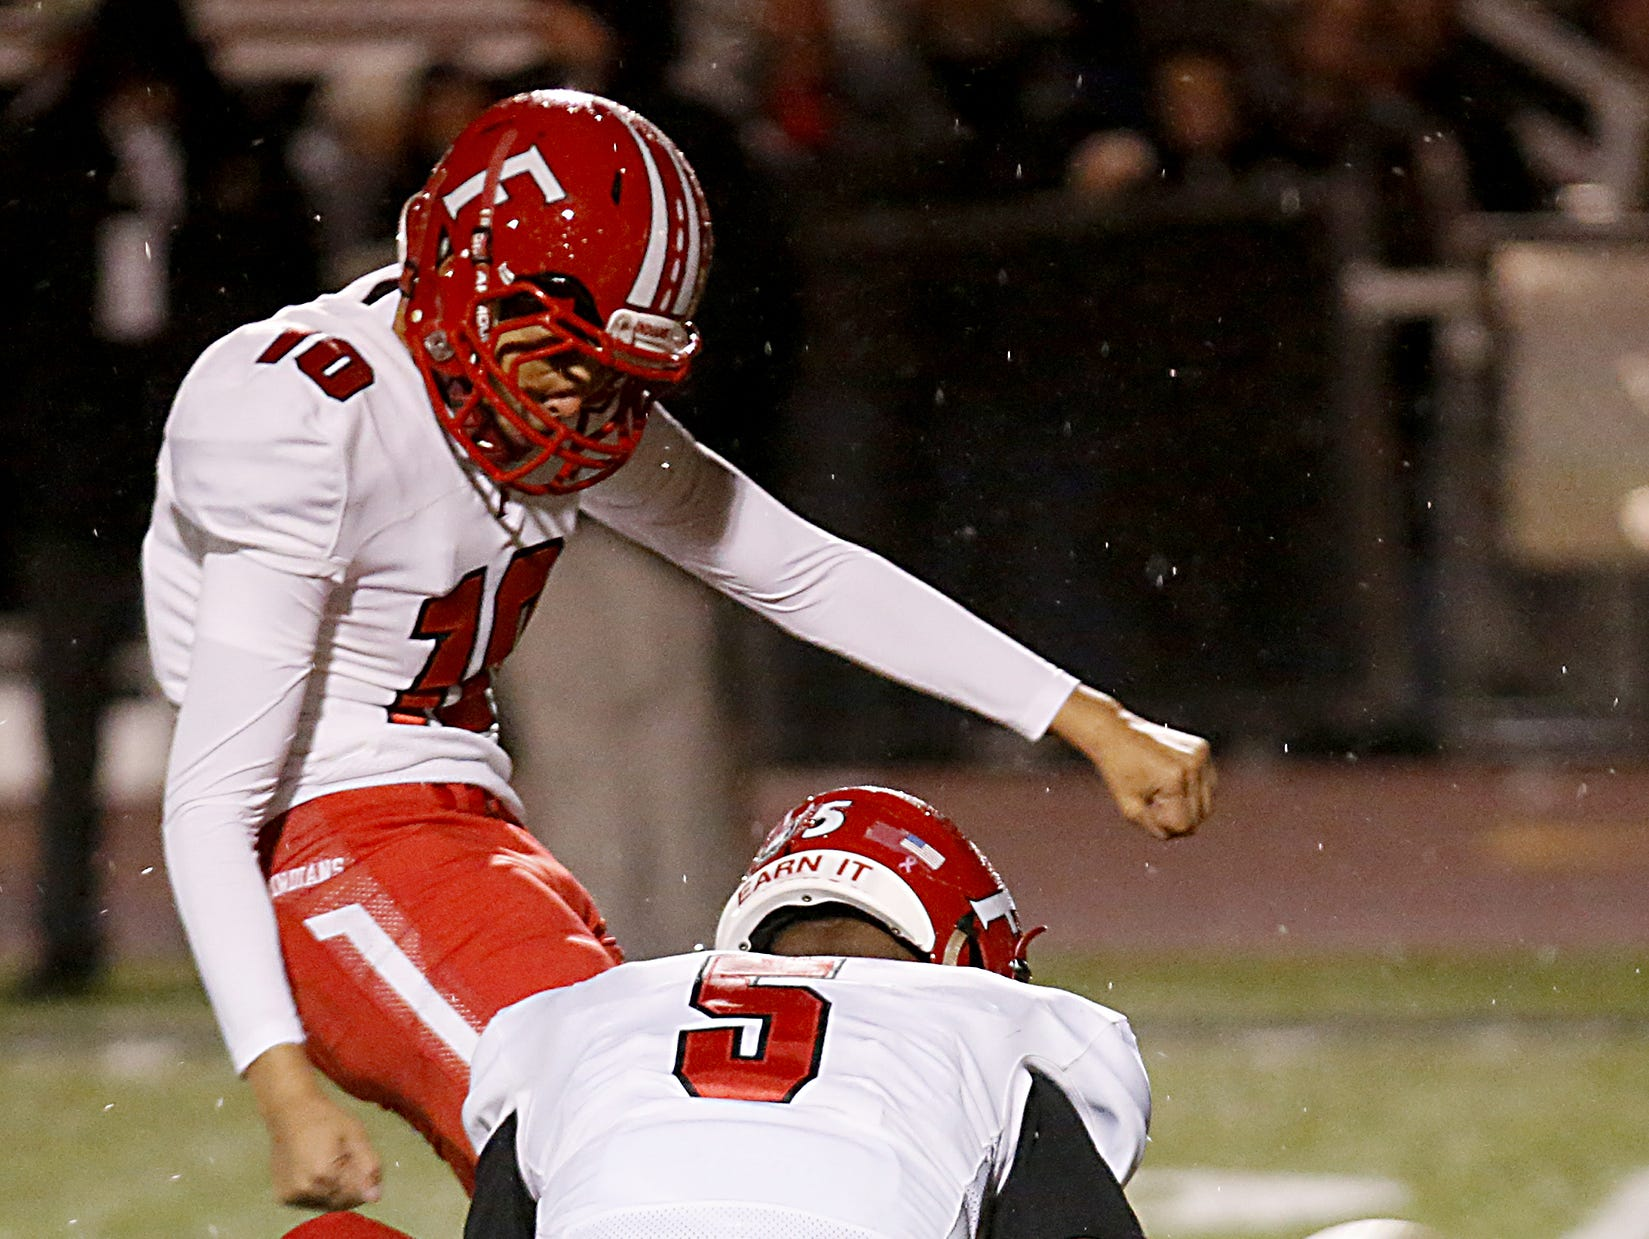 Fairfield kicker Elgin Phillips adds the PAT against Milford as Jeff Tyus holds during their Division I playoff game at Eagle Stadium in Milford Friday, Nov. 2, 2018.